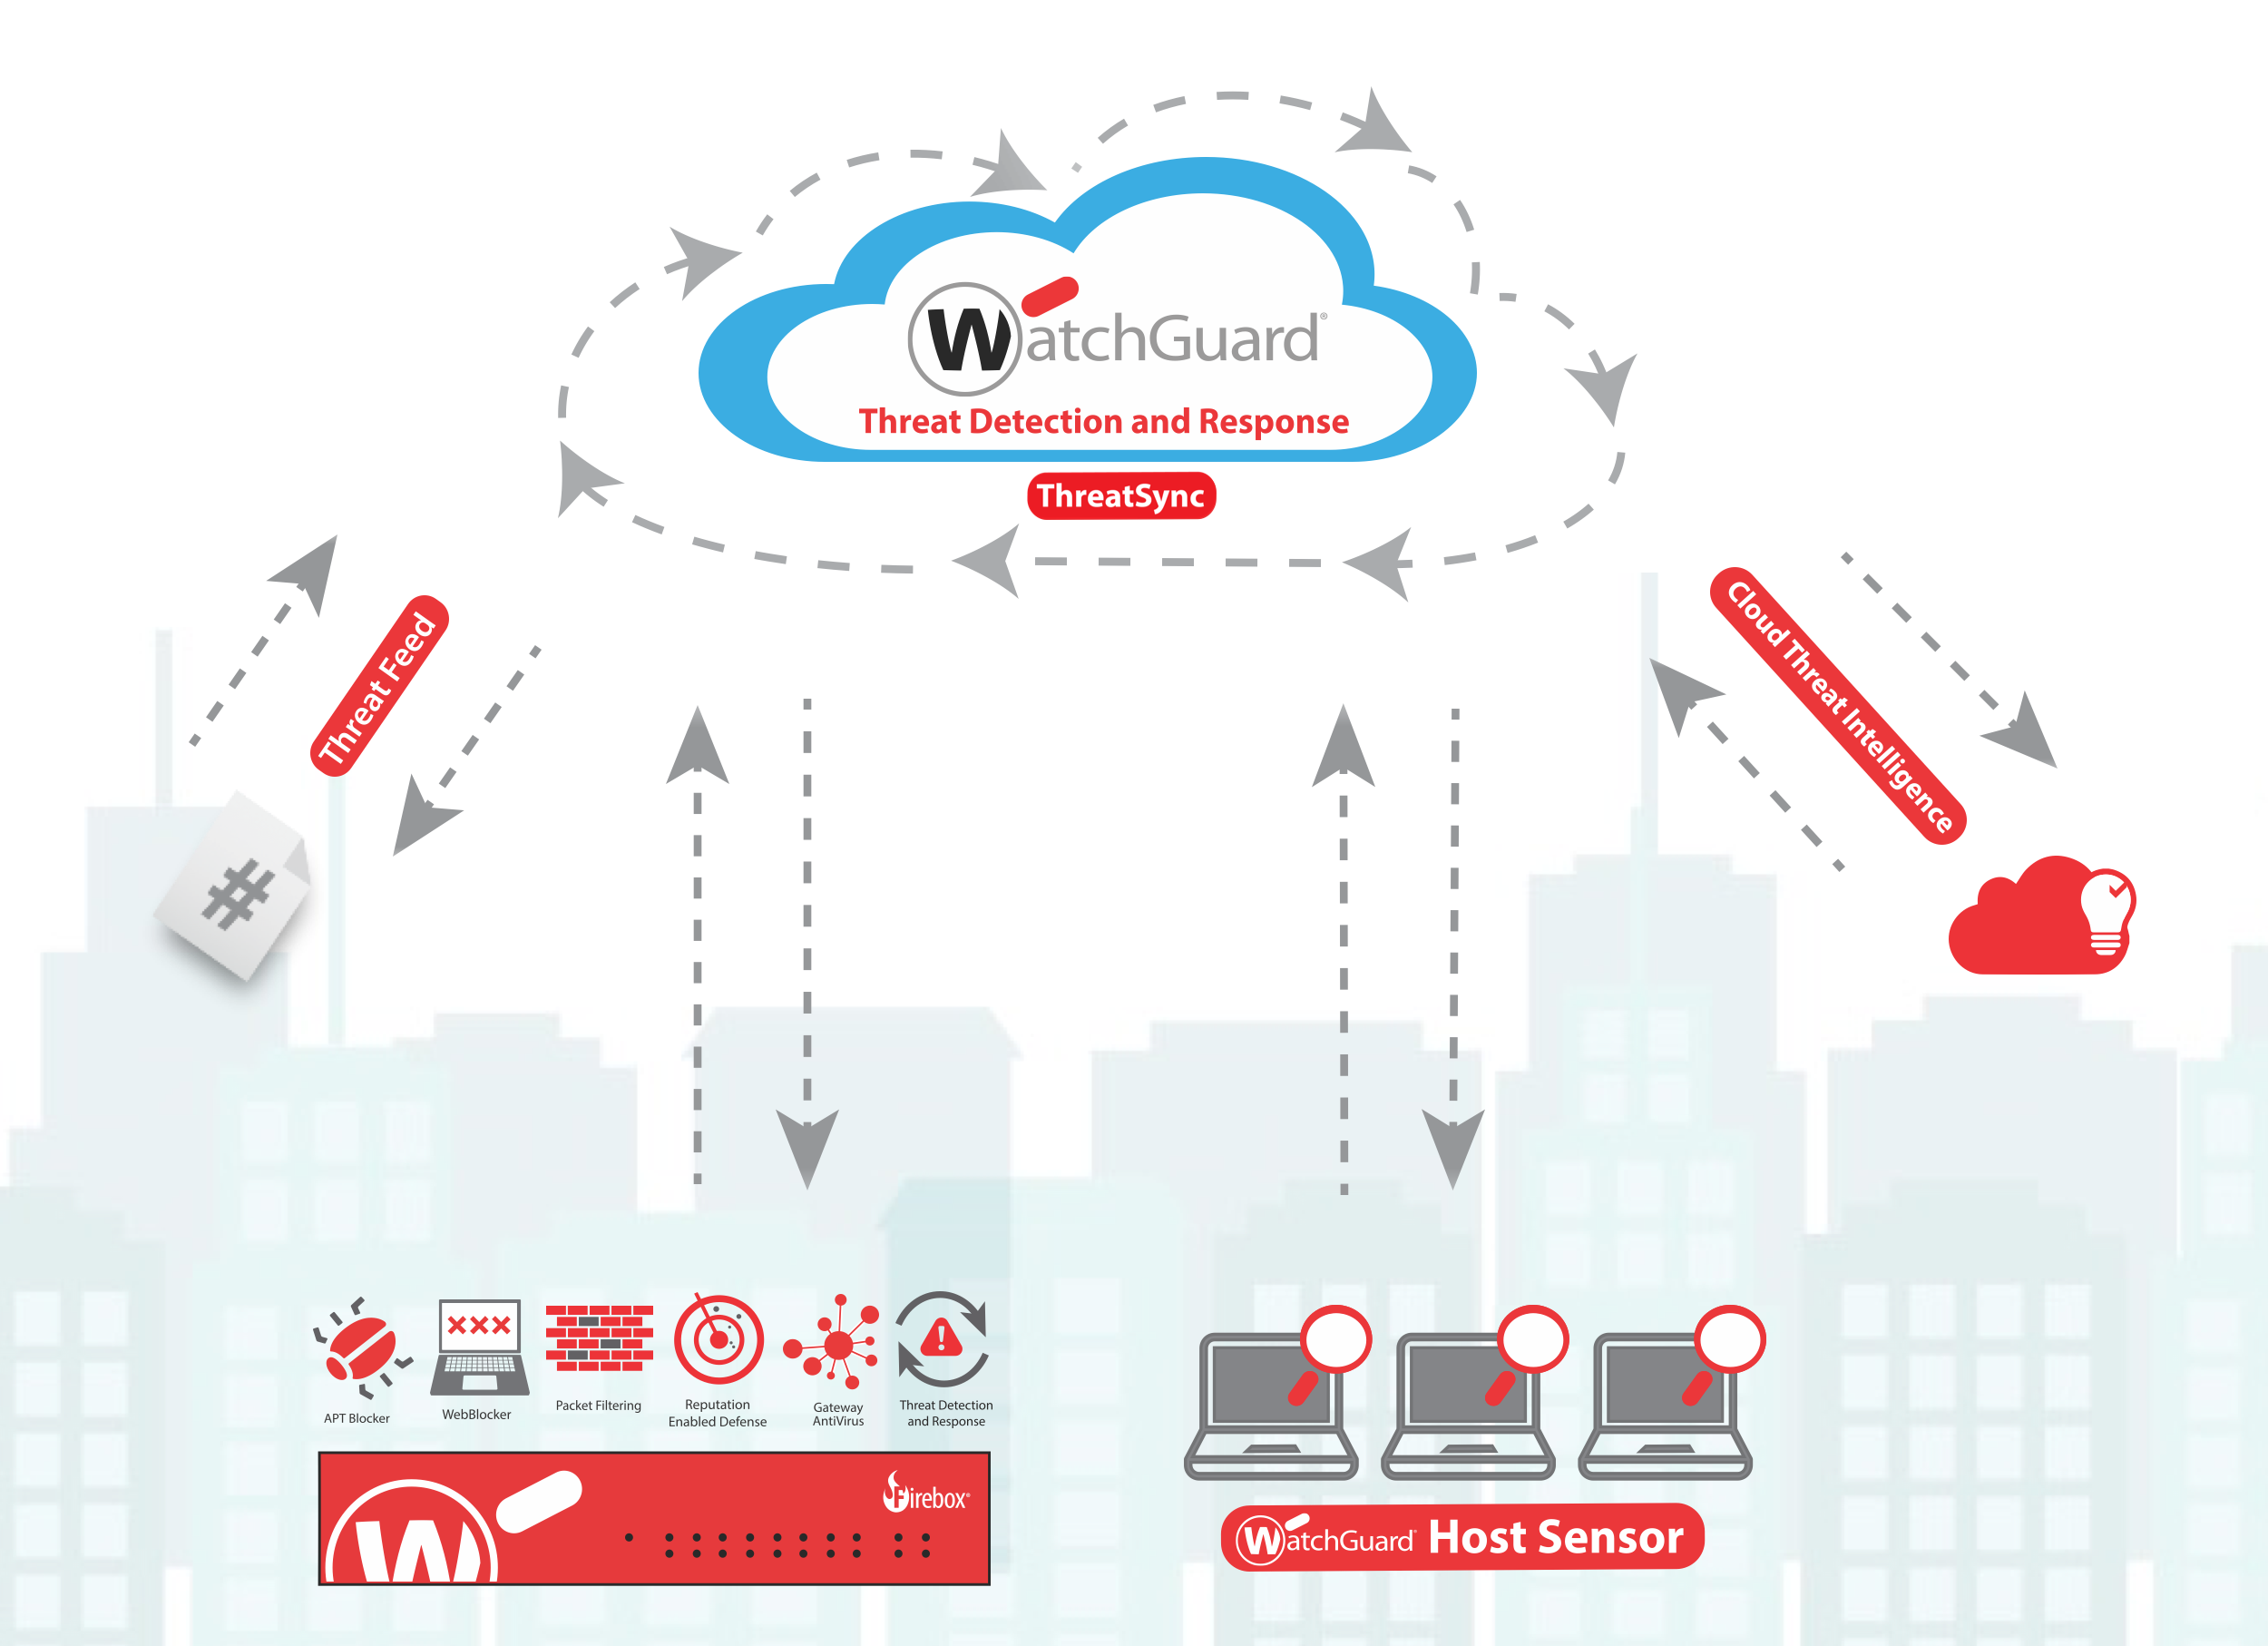 How it Works Diagram: Threat Detection and Response